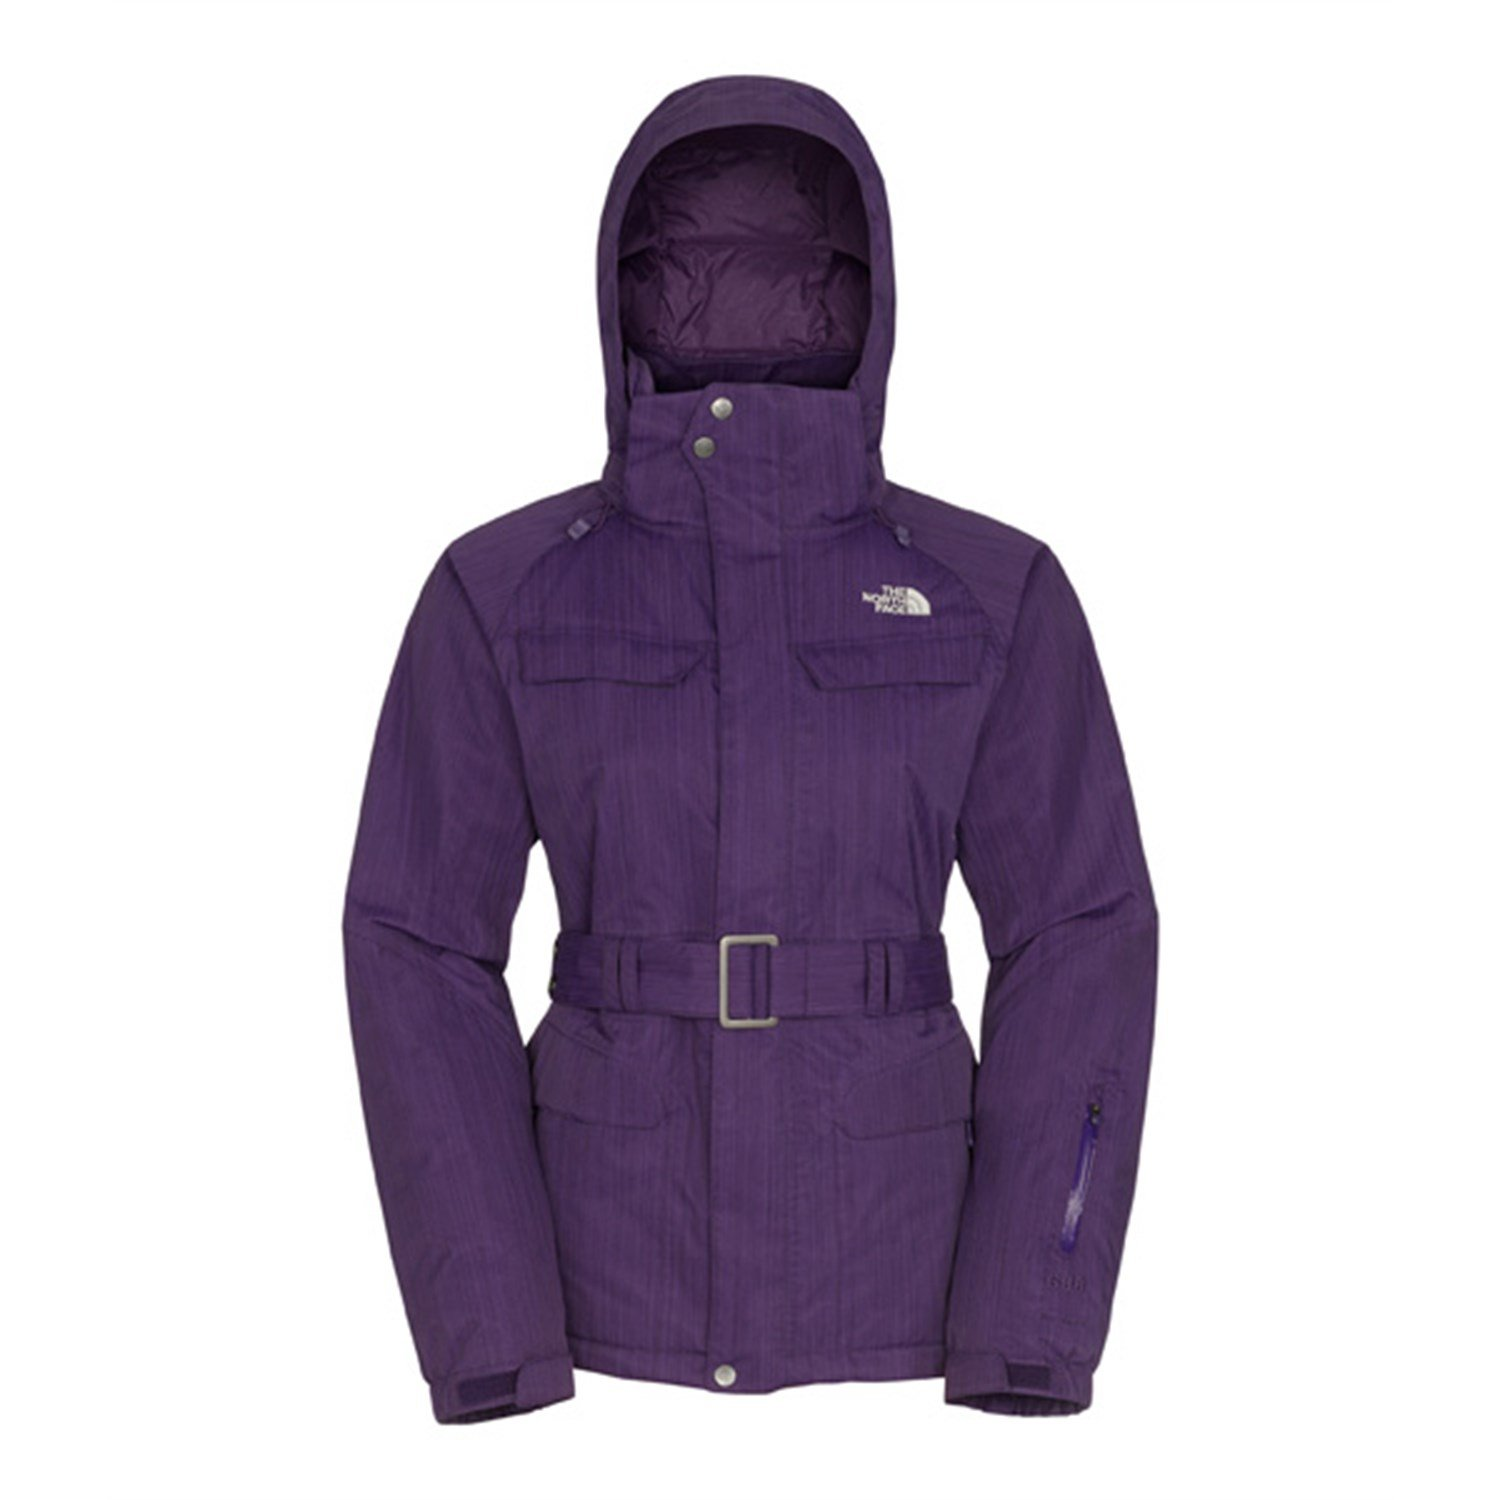 Find great deals on eBay for get jacket. Shop with confidence.